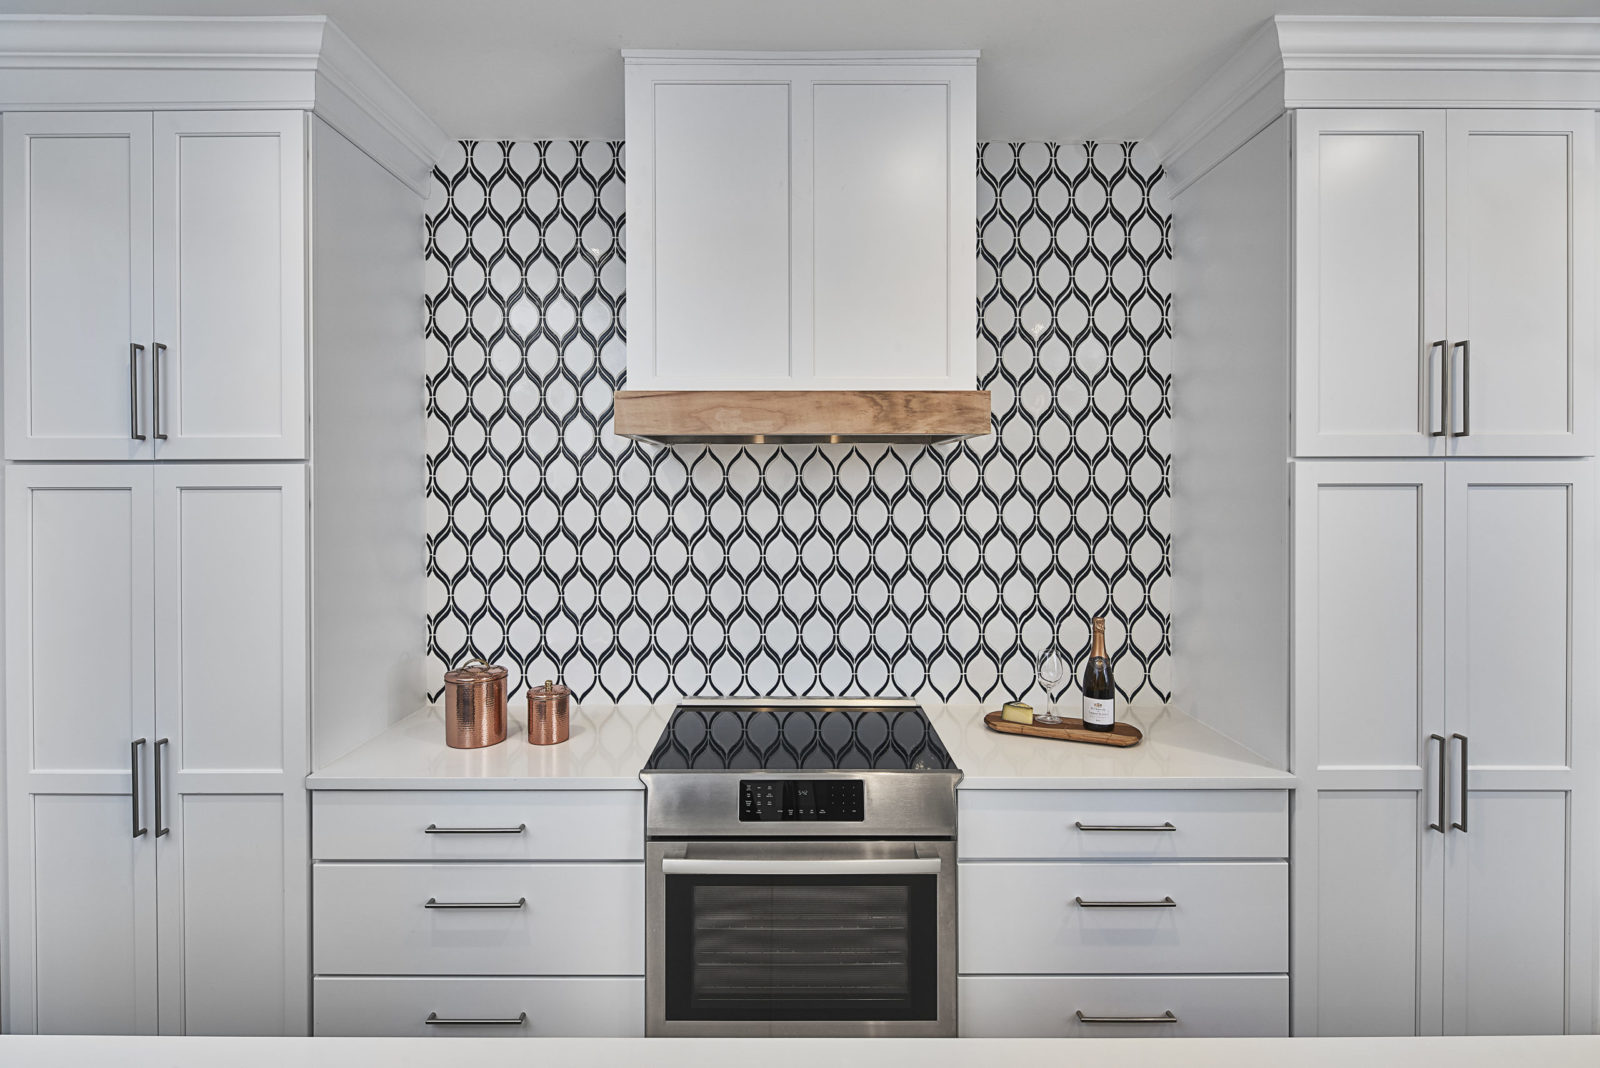 home-design-mosaic-tile-backsplash-to-ceiling